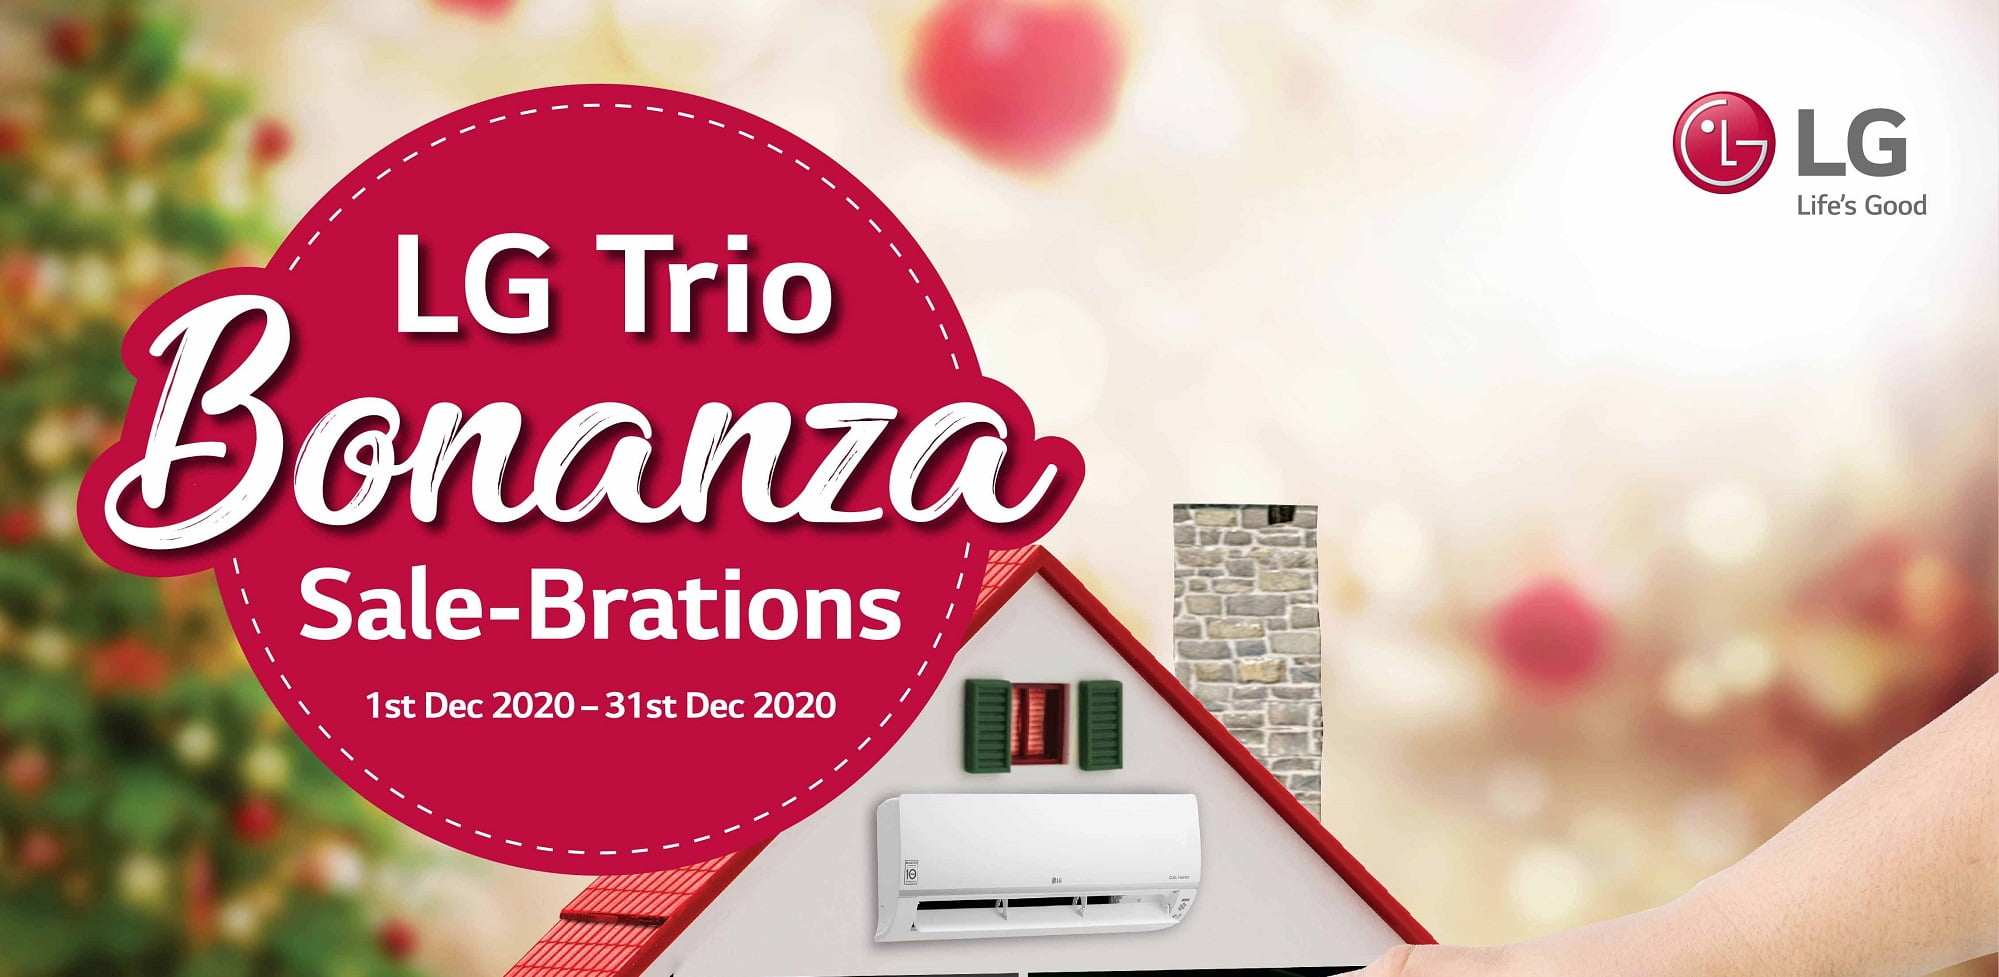 Say Y.E.S to LG Trio Bonanza with Remarkable Deals Up to 40% Off